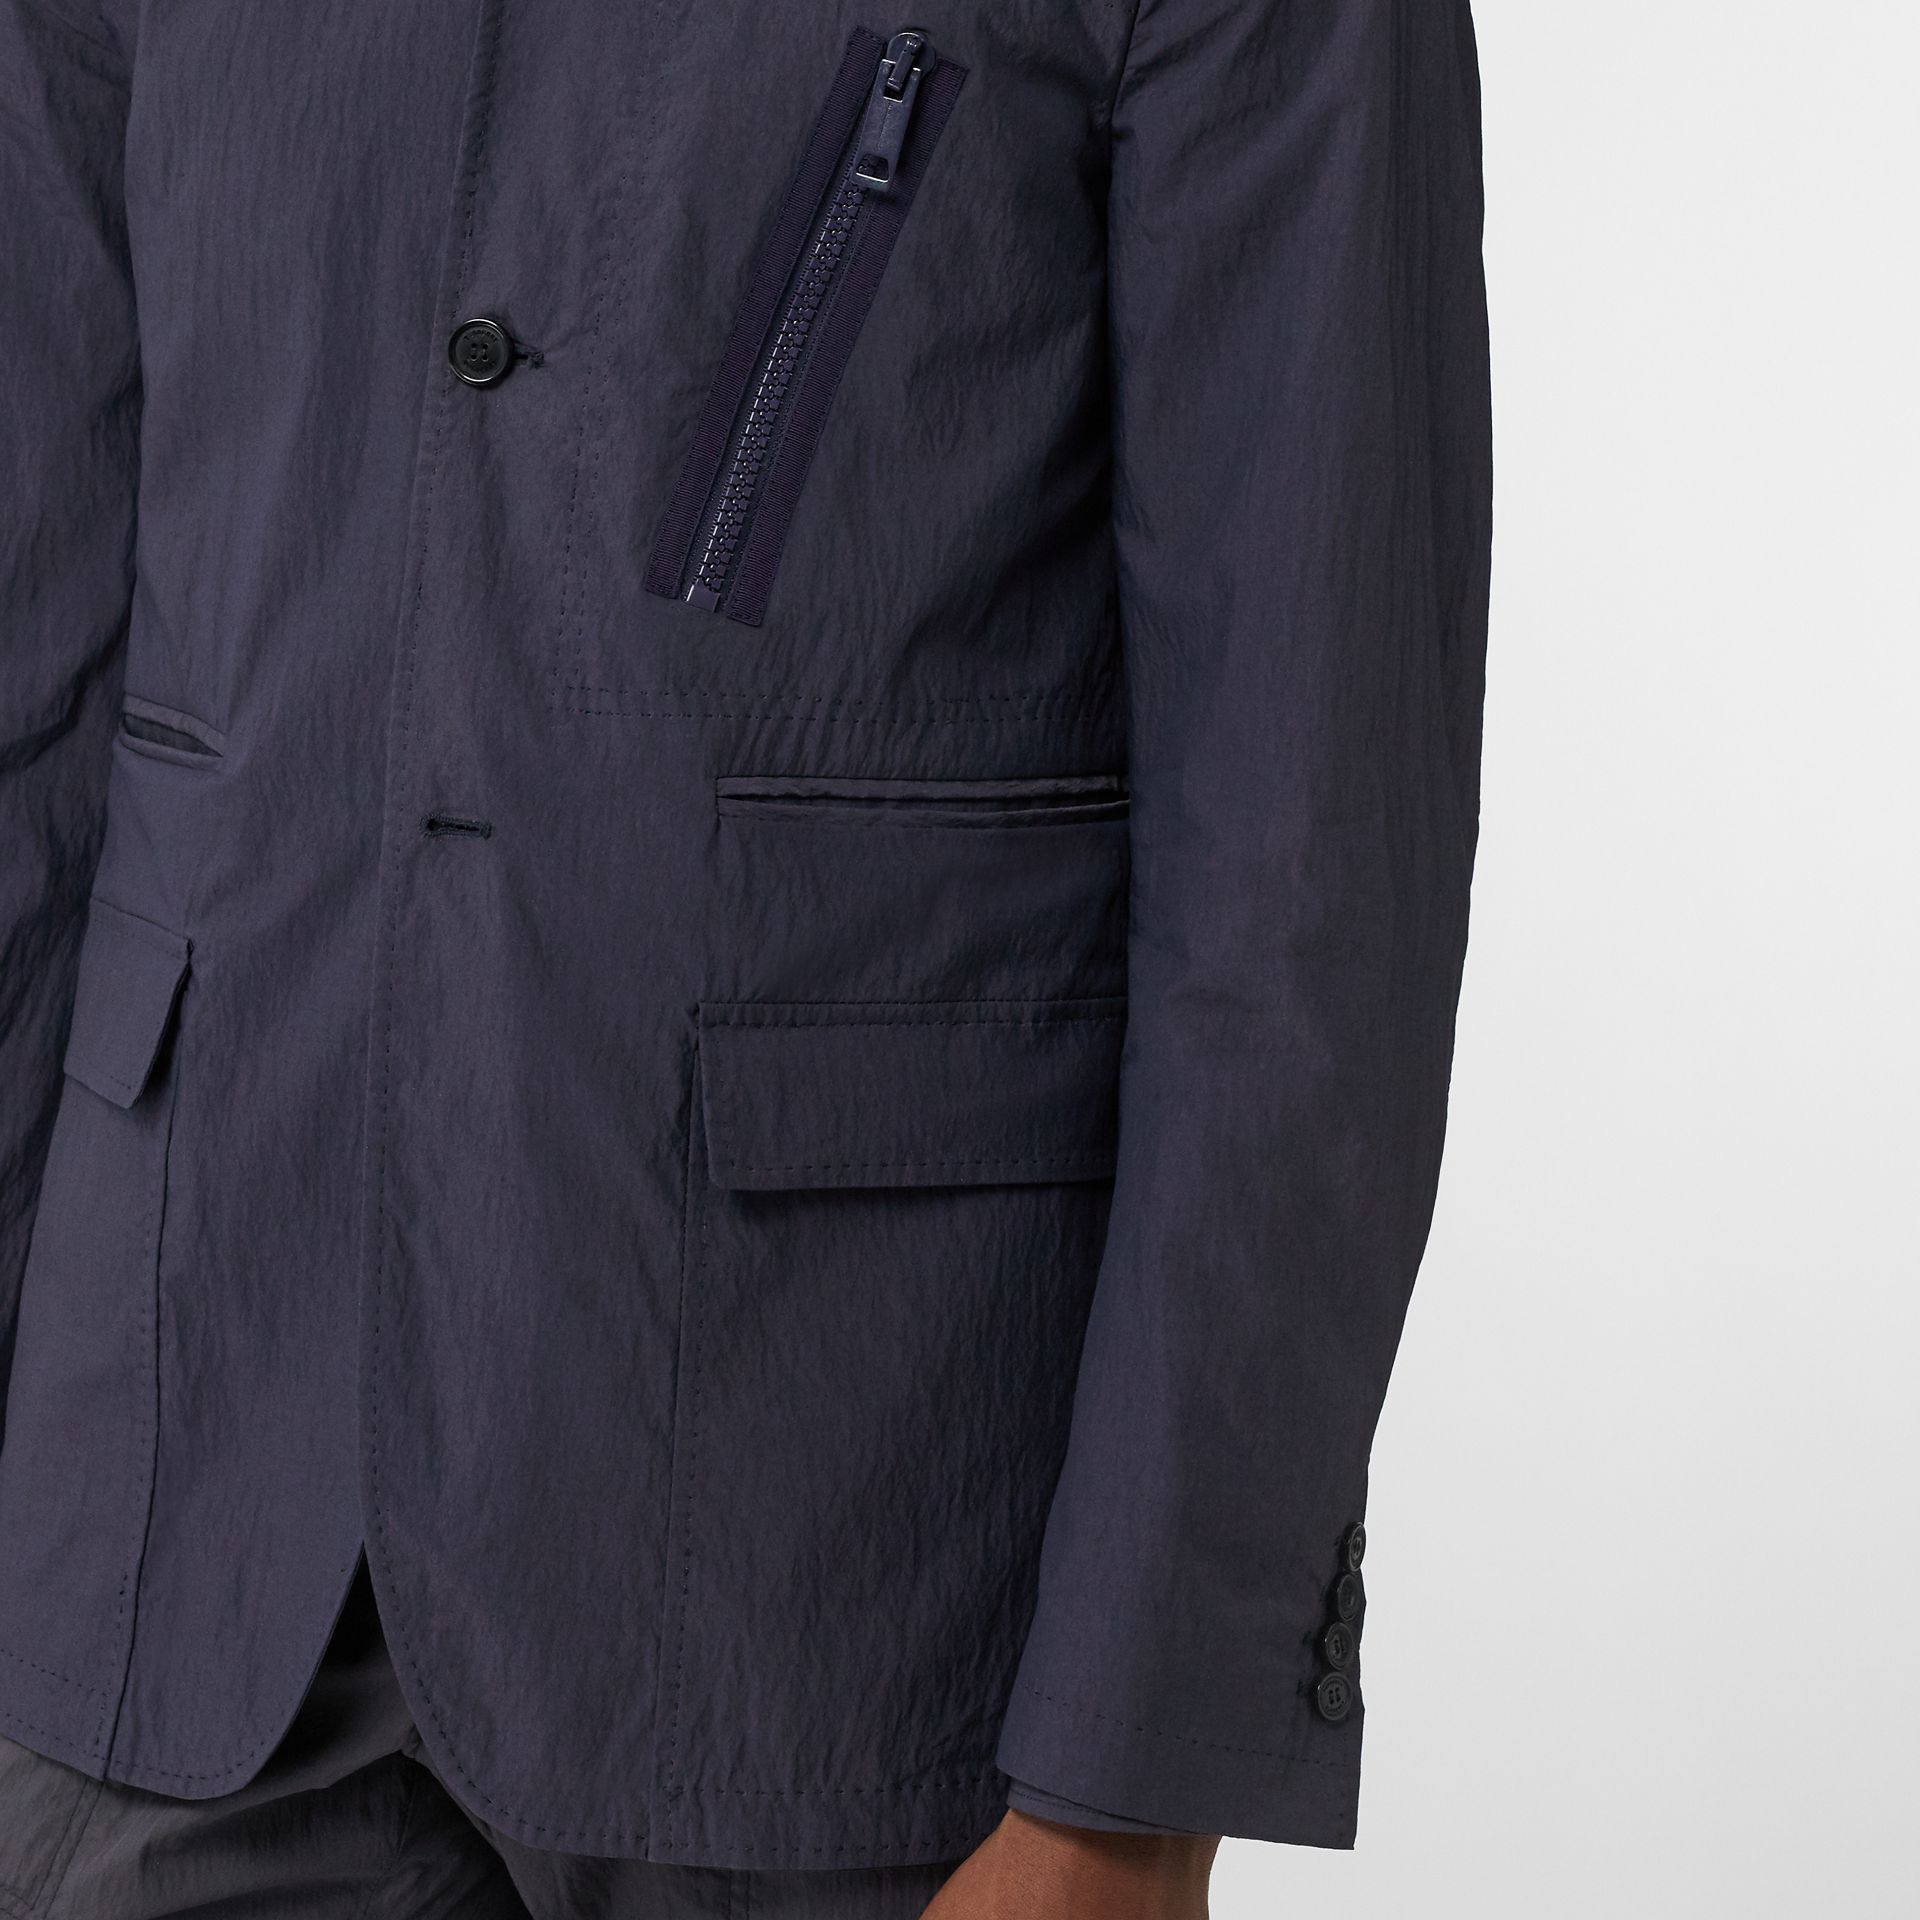 Crinkled Cotton Blend Tailored Jacket in Navy - Men | Burberry Canada - gallery image 4